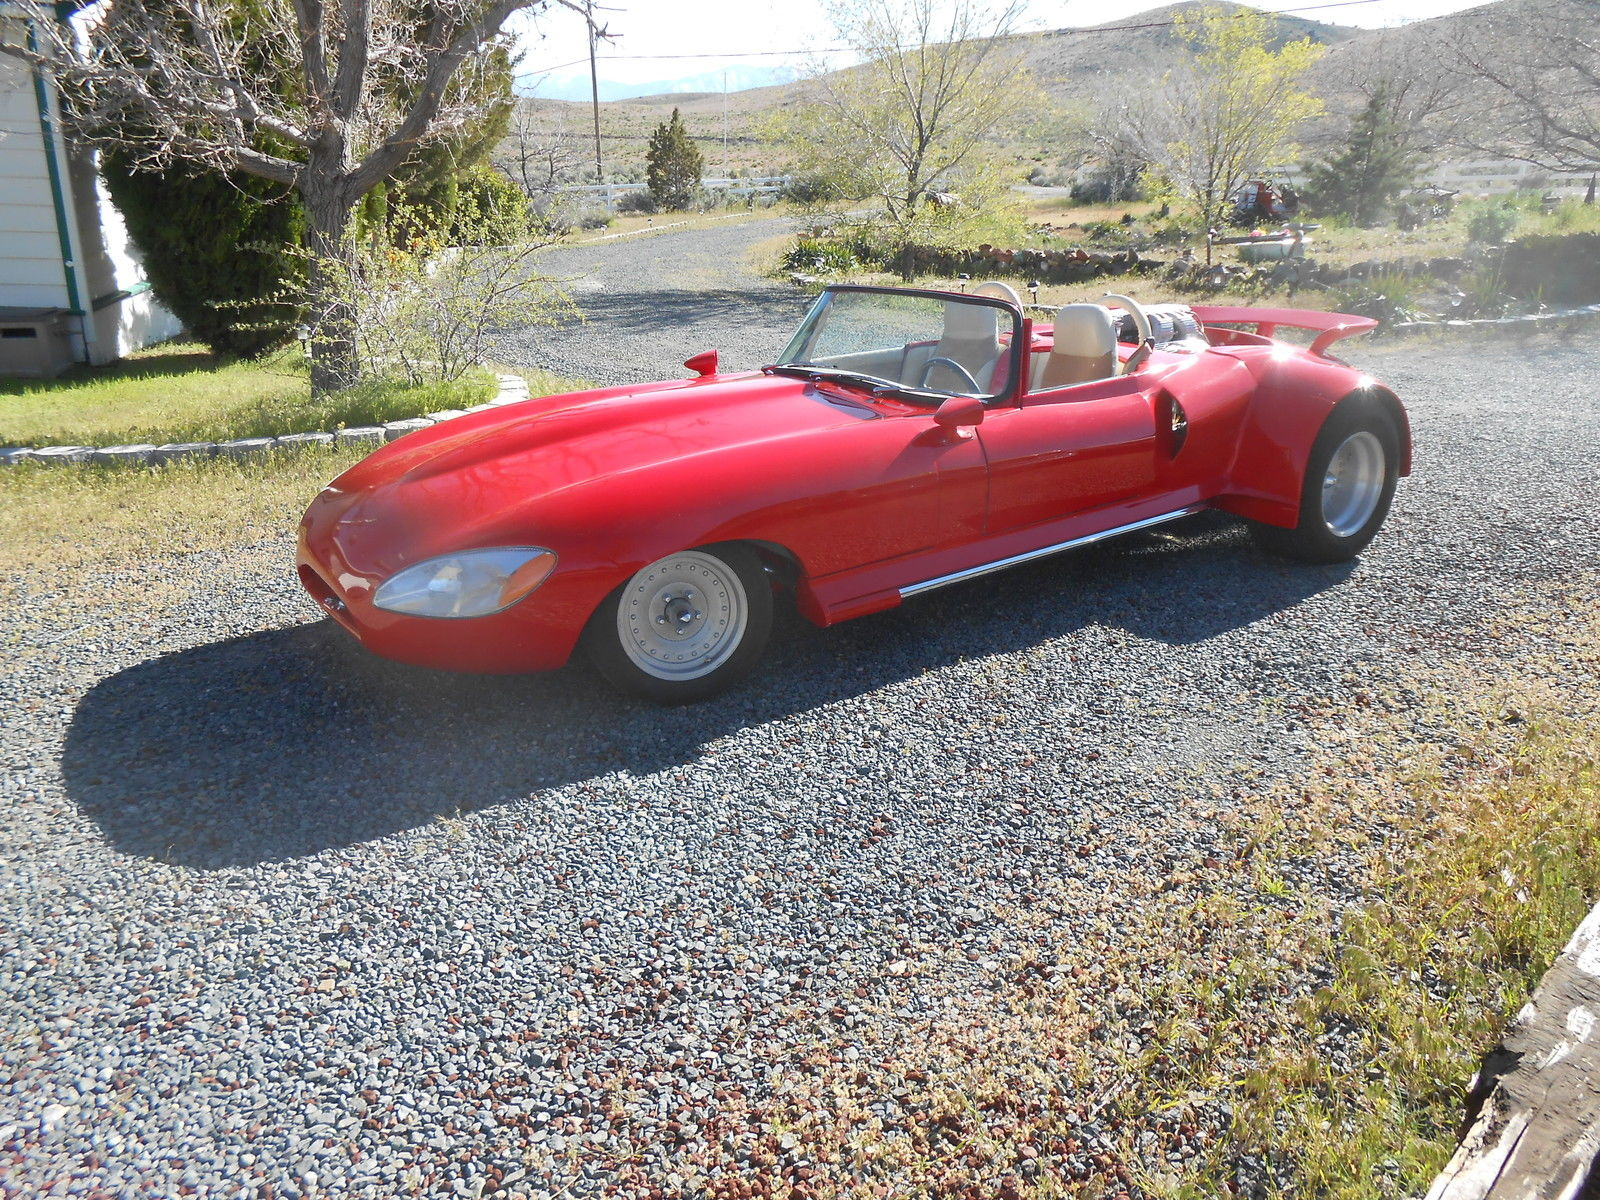 1968 Jaguar XK-E Roadster - the Words